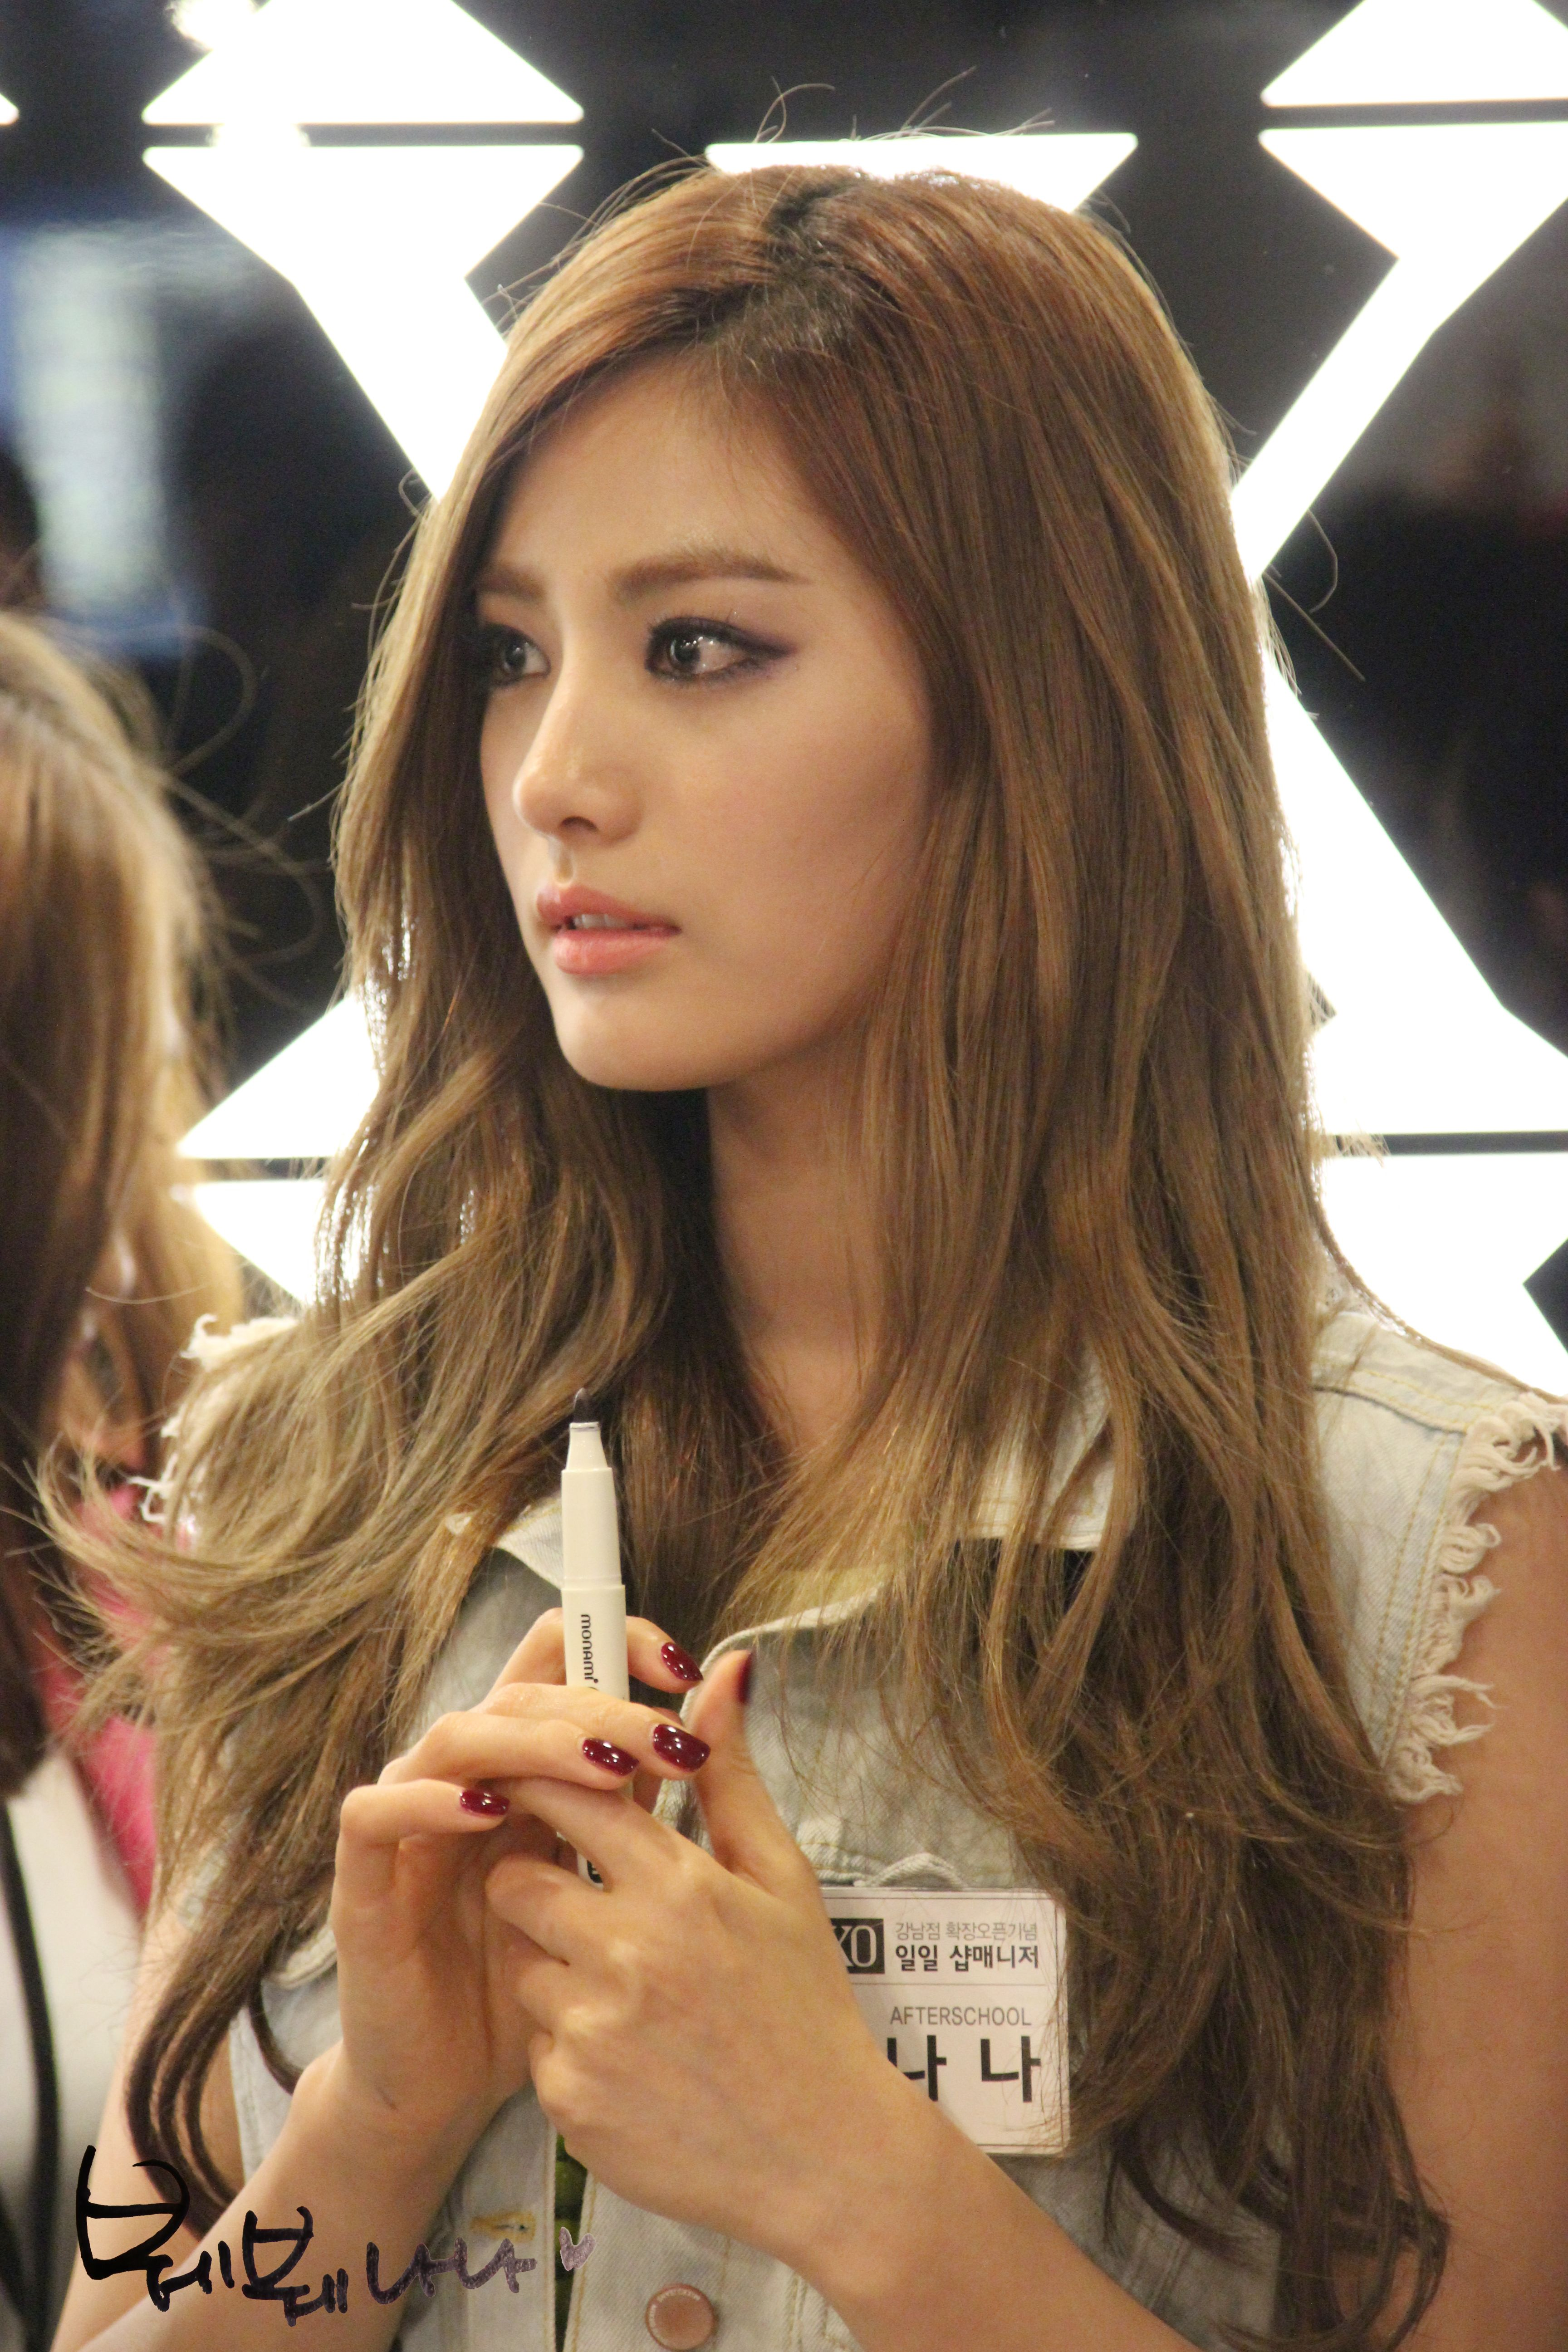 After School NaNa. Her face, her hair, her makeup, her ...